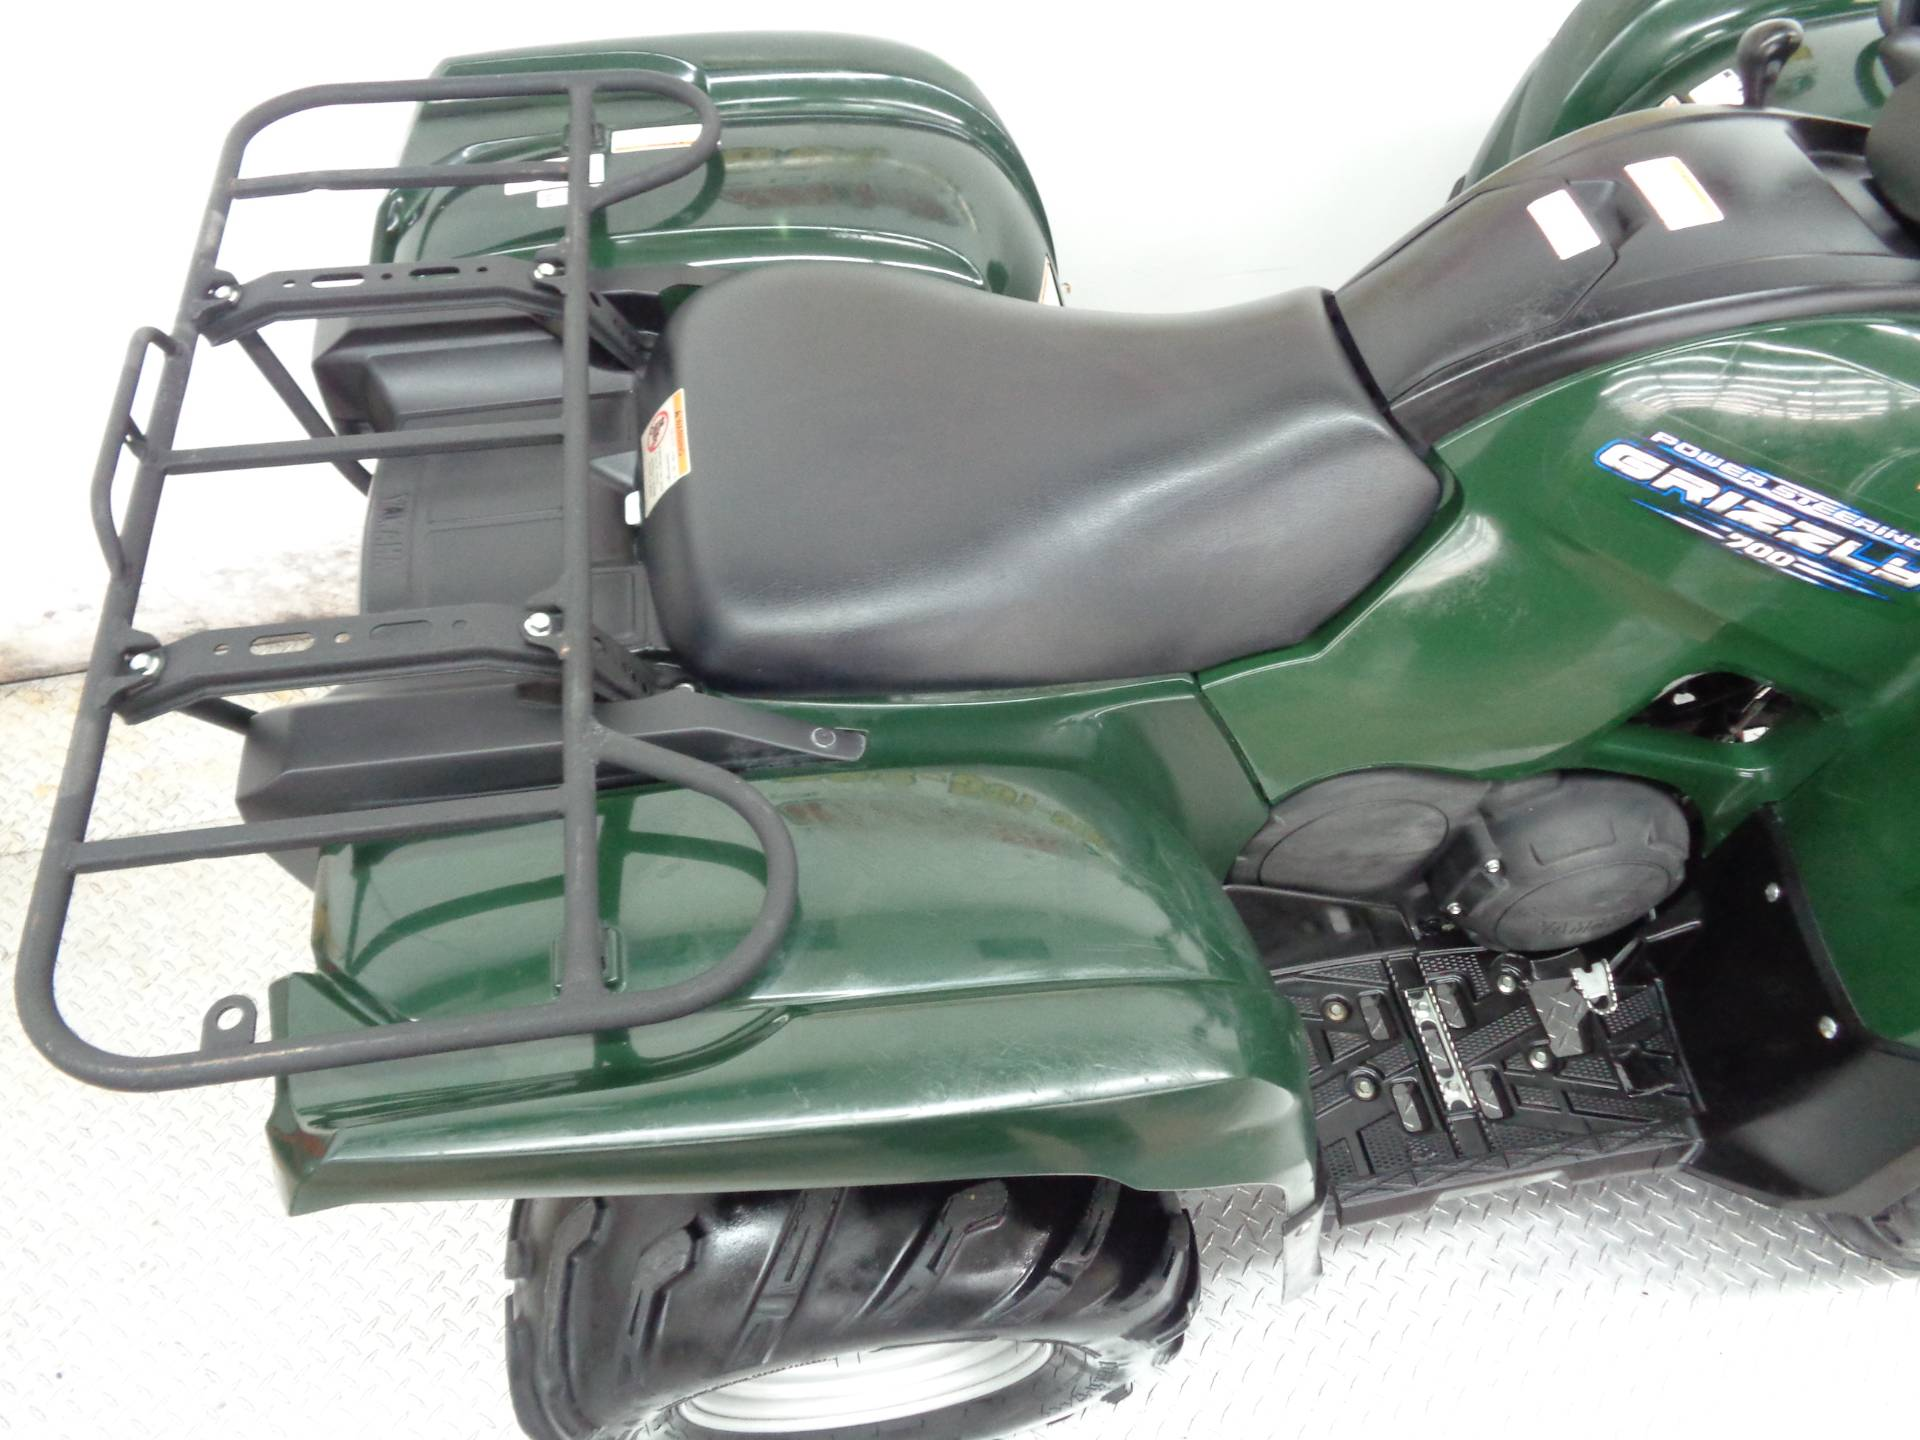 2011 yamaha grizzly 700 hitch images